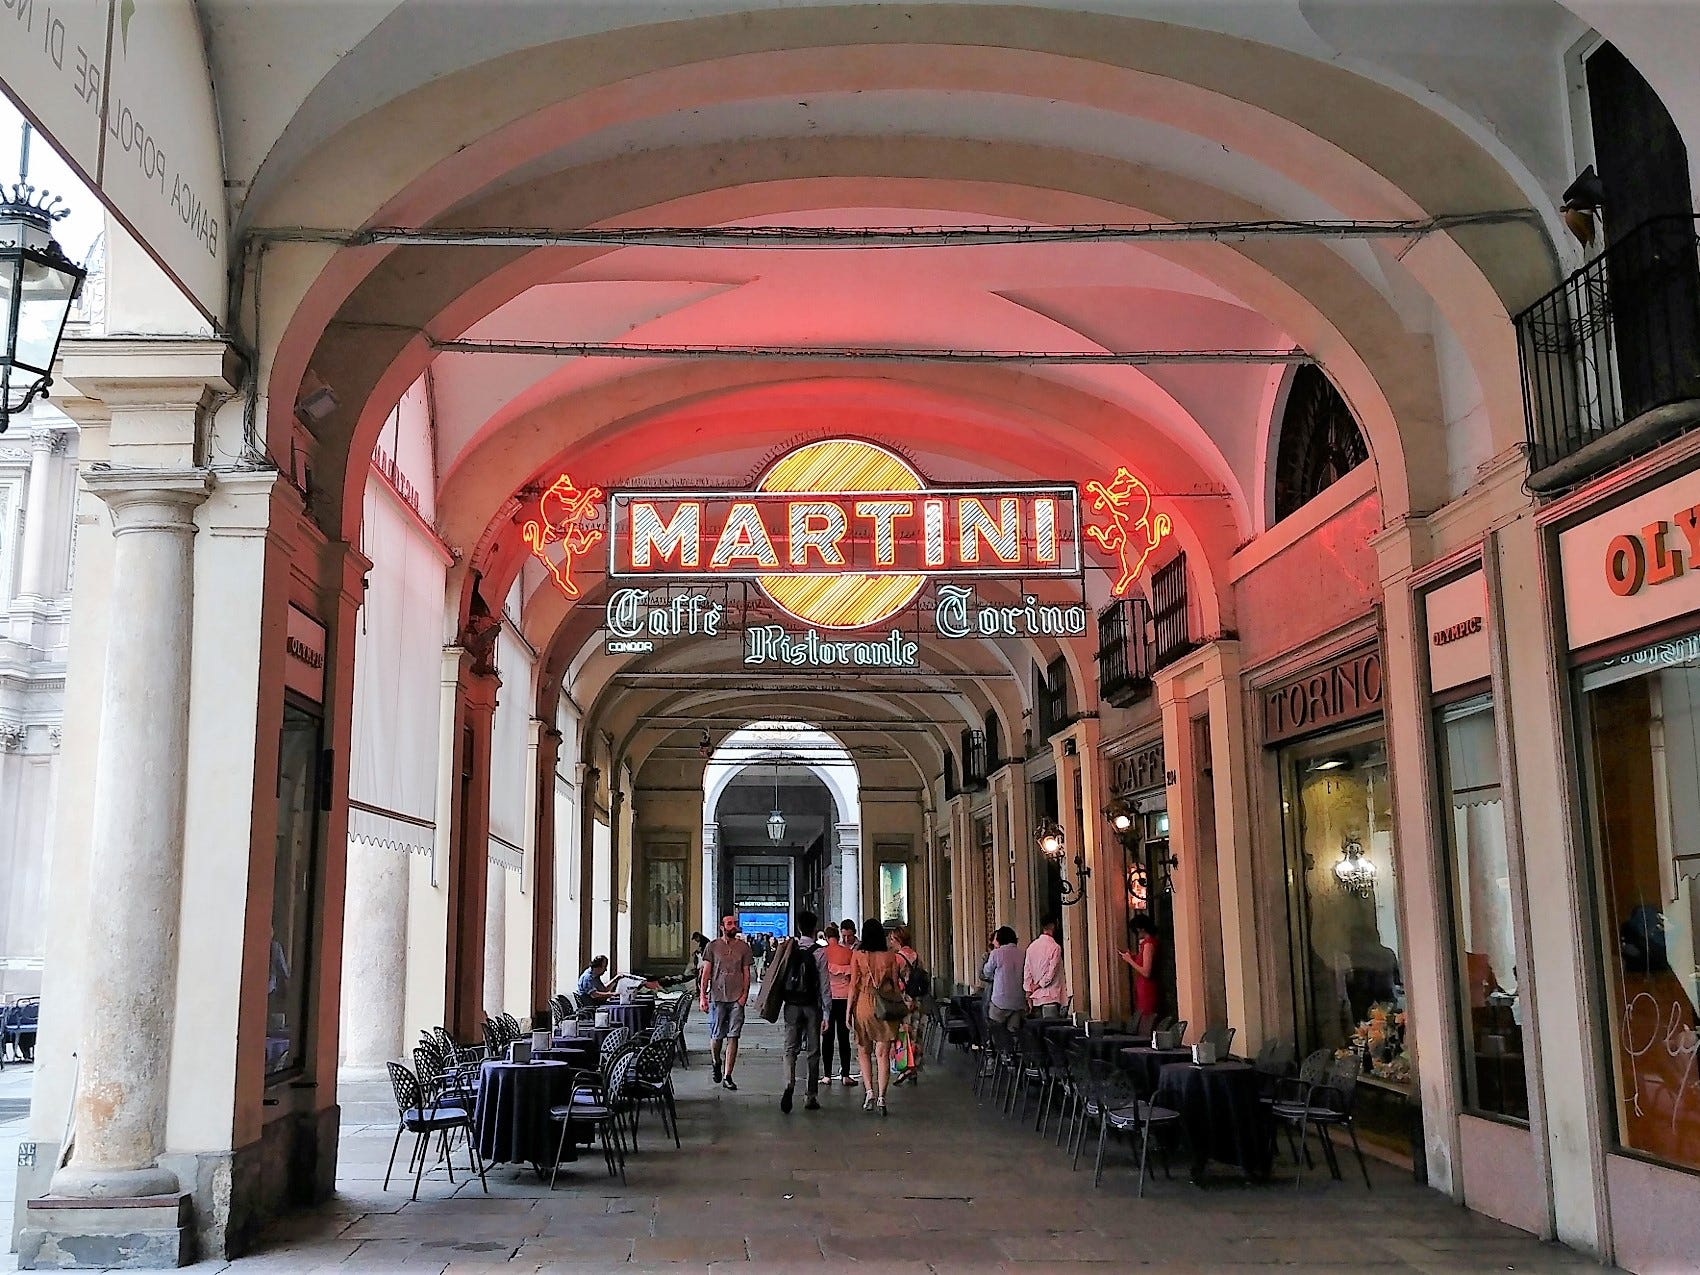 """""""The company was born in Torino,"""" Fanciotto says. It retains a strong presence throughout the city, and to walk through Turin is to experience a living history of aperitivo culture. Visitors can count on a well-made example at an establishment with this type of signage, such as the Caffe' Torino along the Piazza San Carlo Torino."""